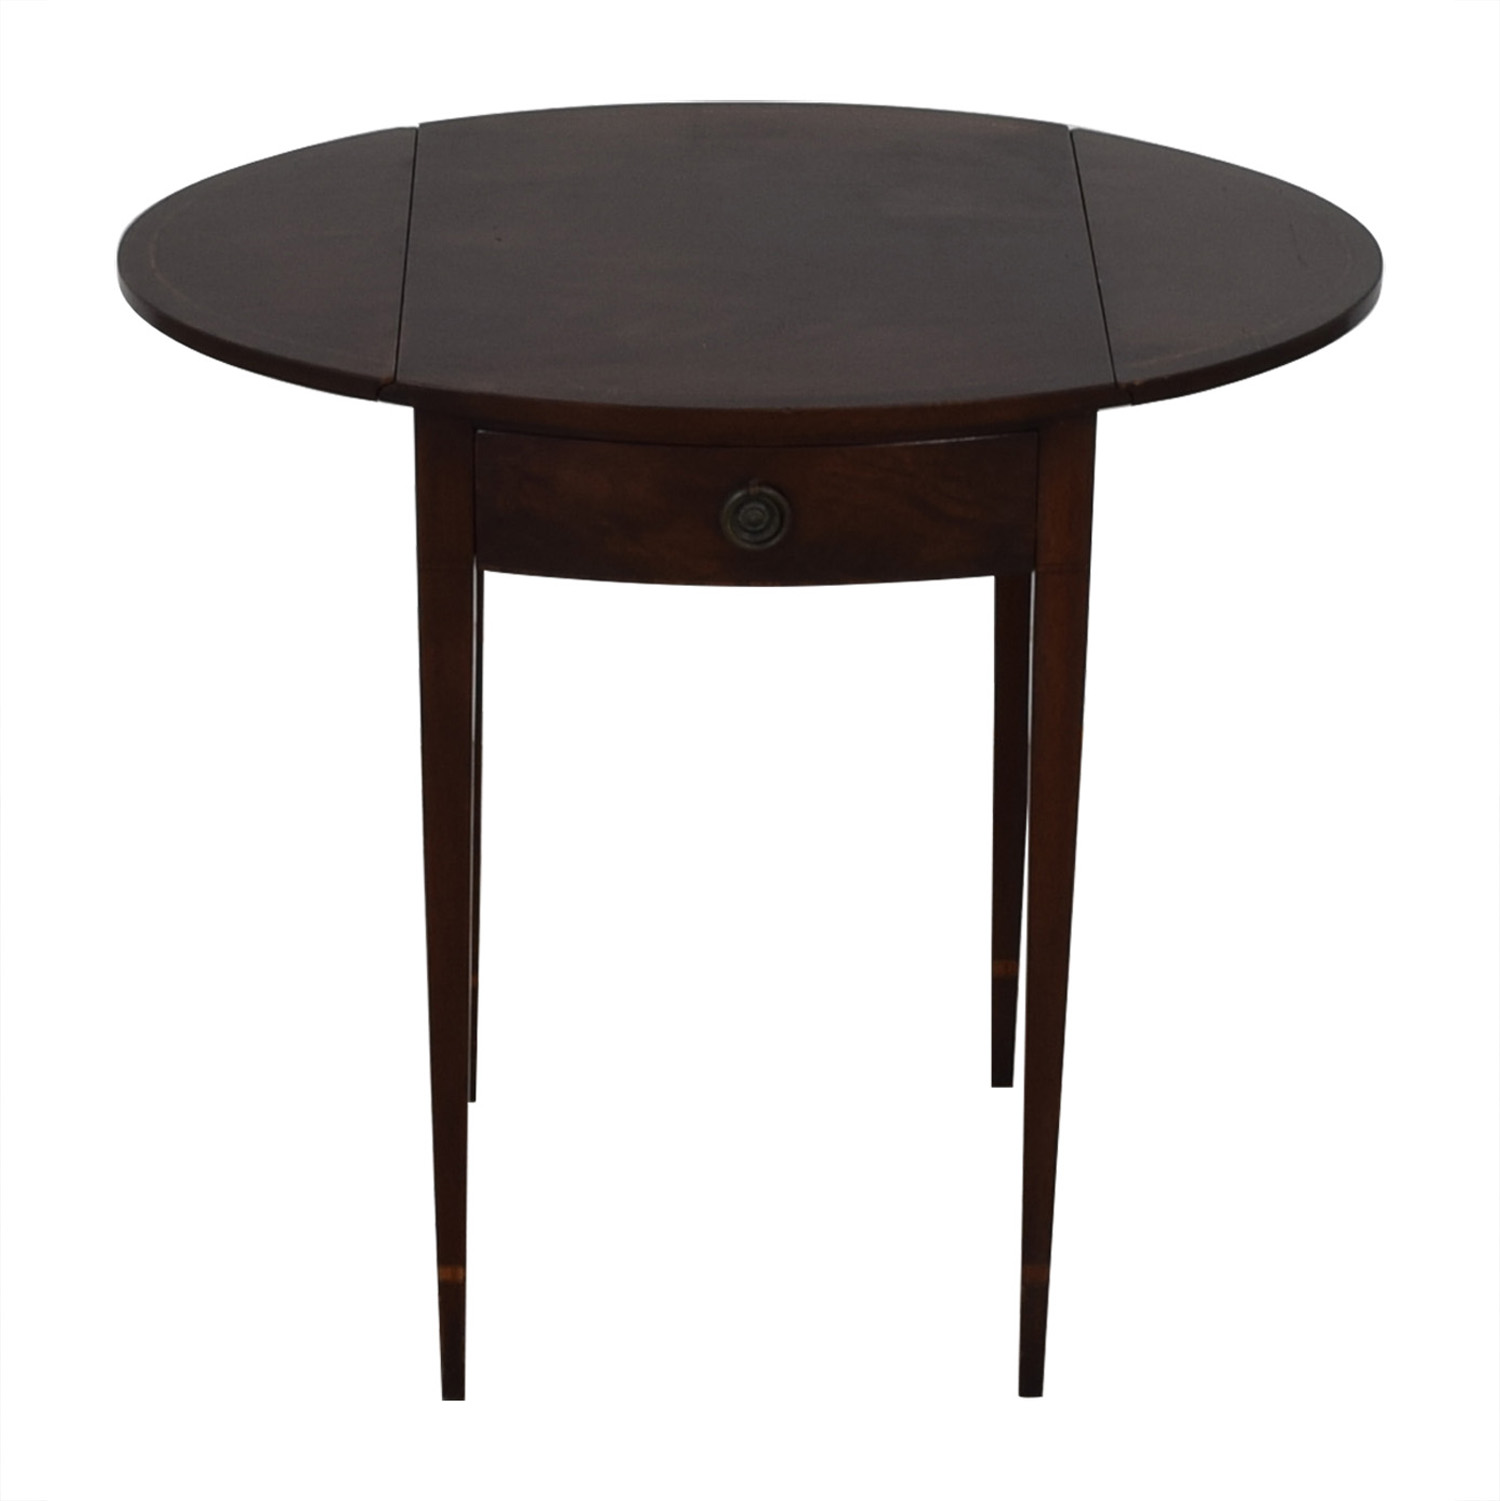 Beacon Hill Collection Beacon Hill Collection Oval Drop Leaf Accent Table second hand